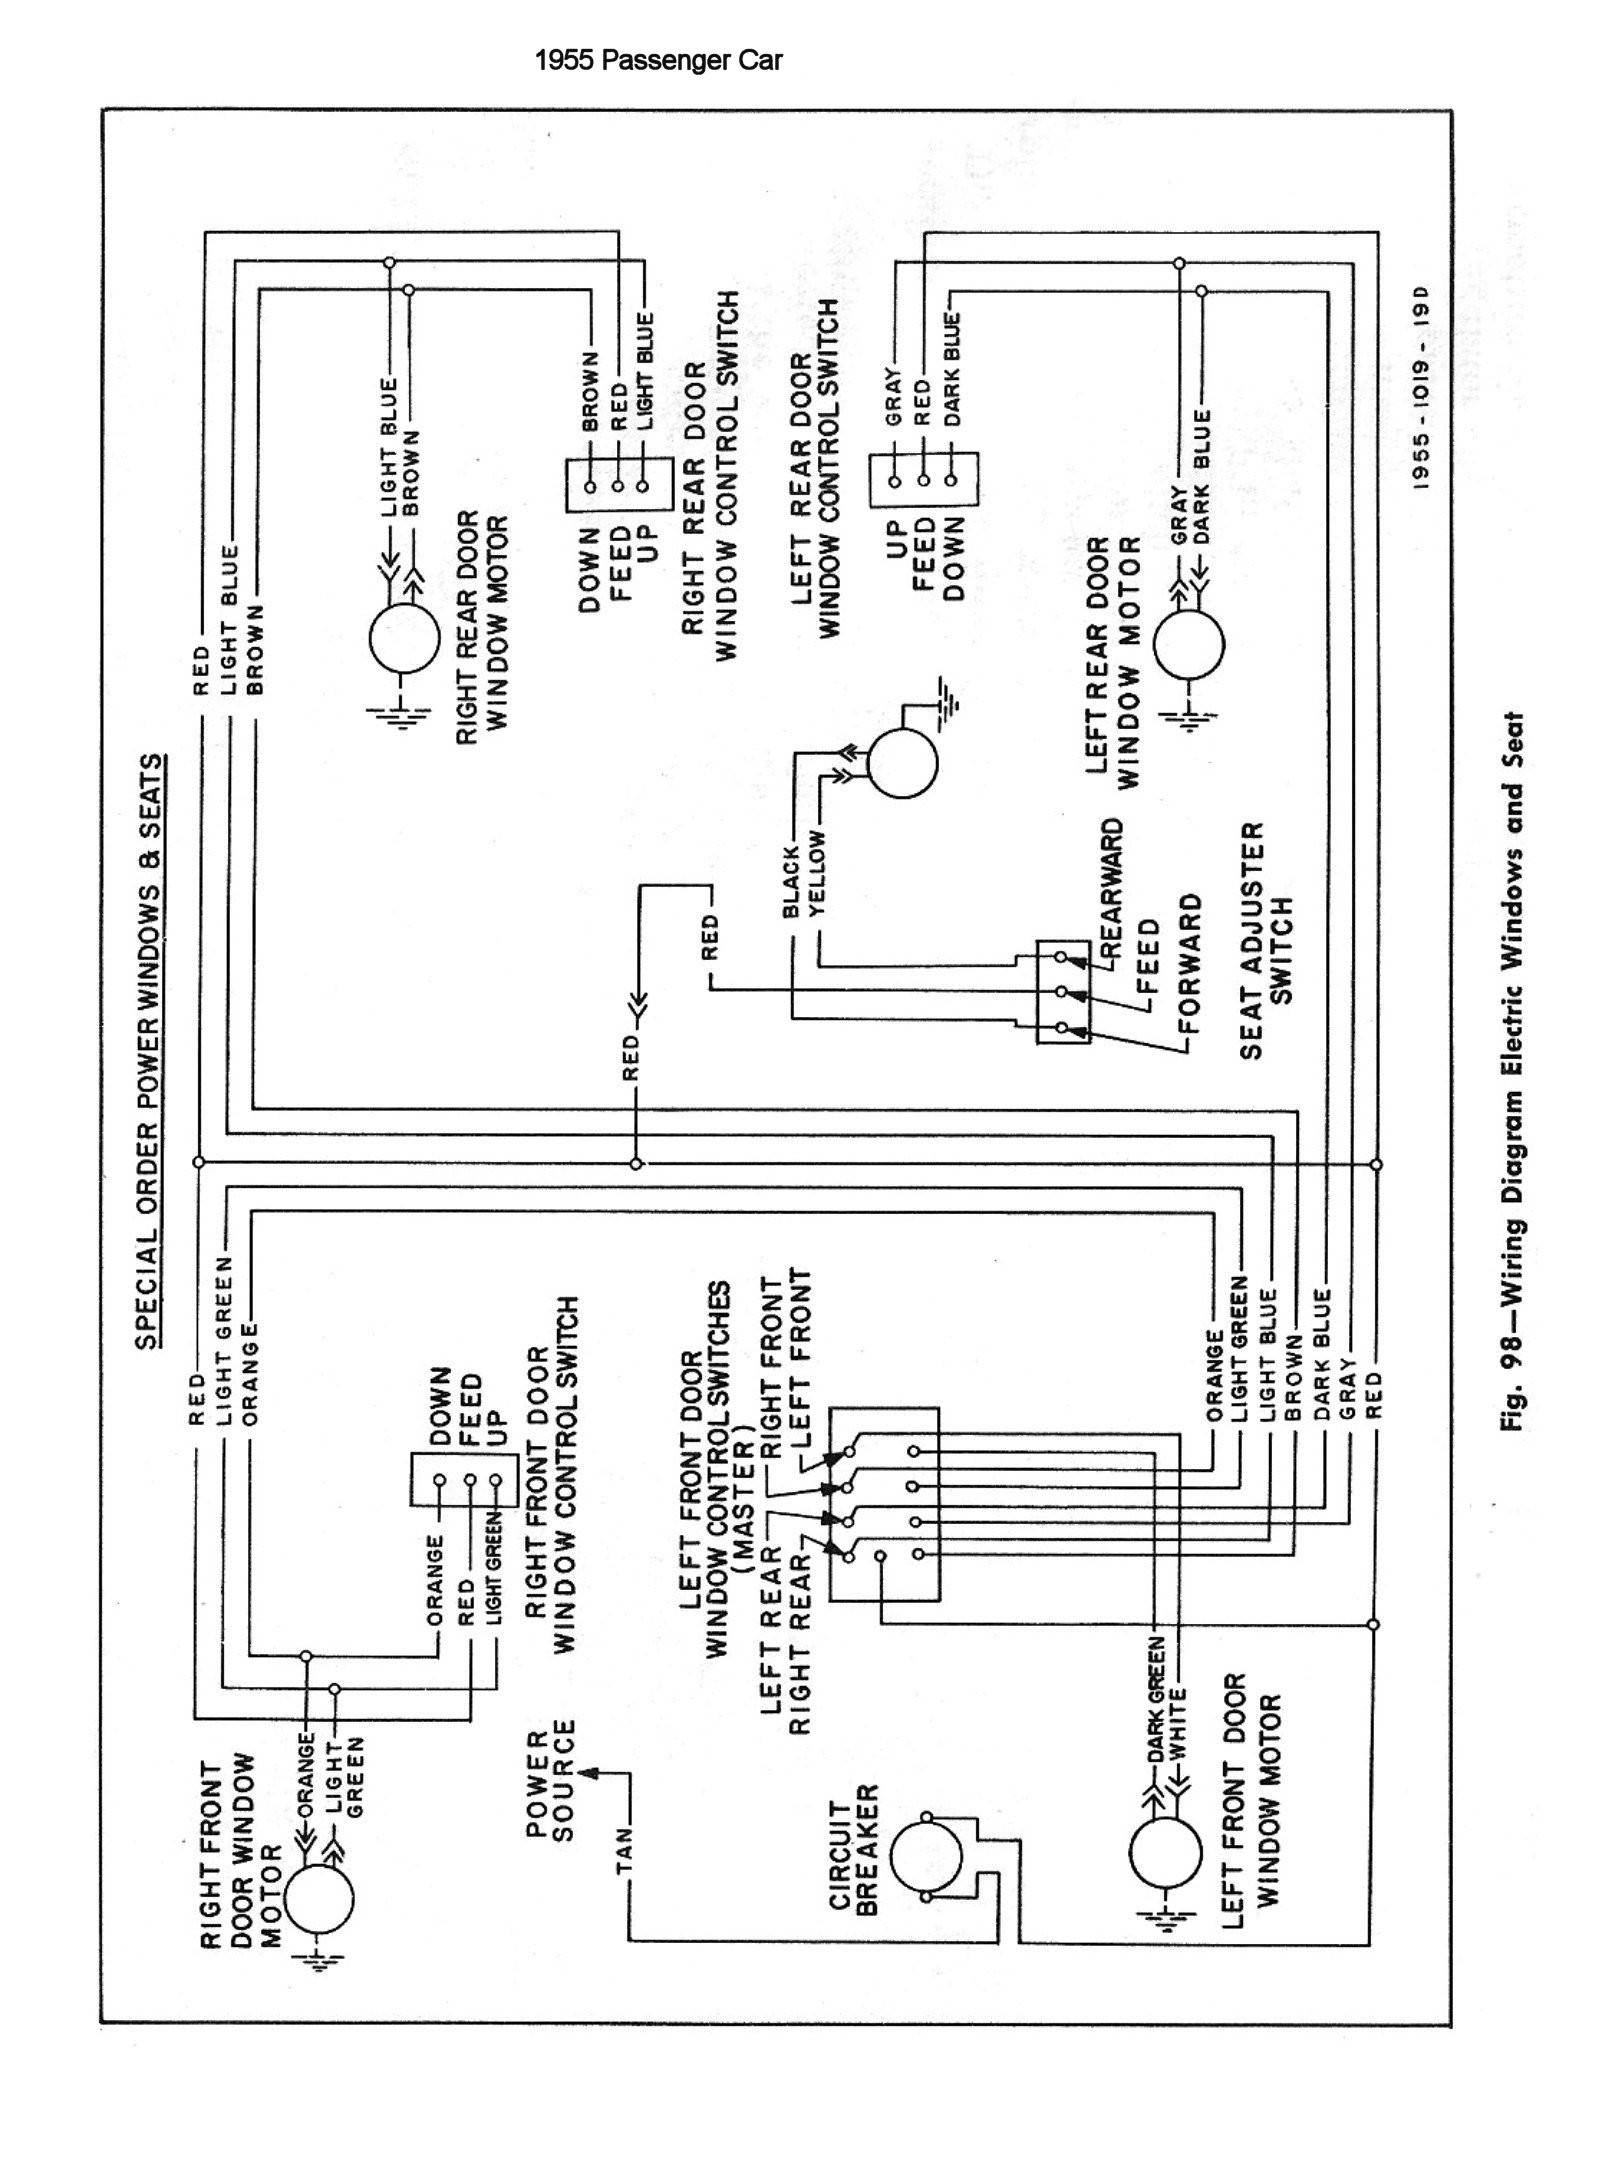 Wiring Diagram For A Chevrolet C10